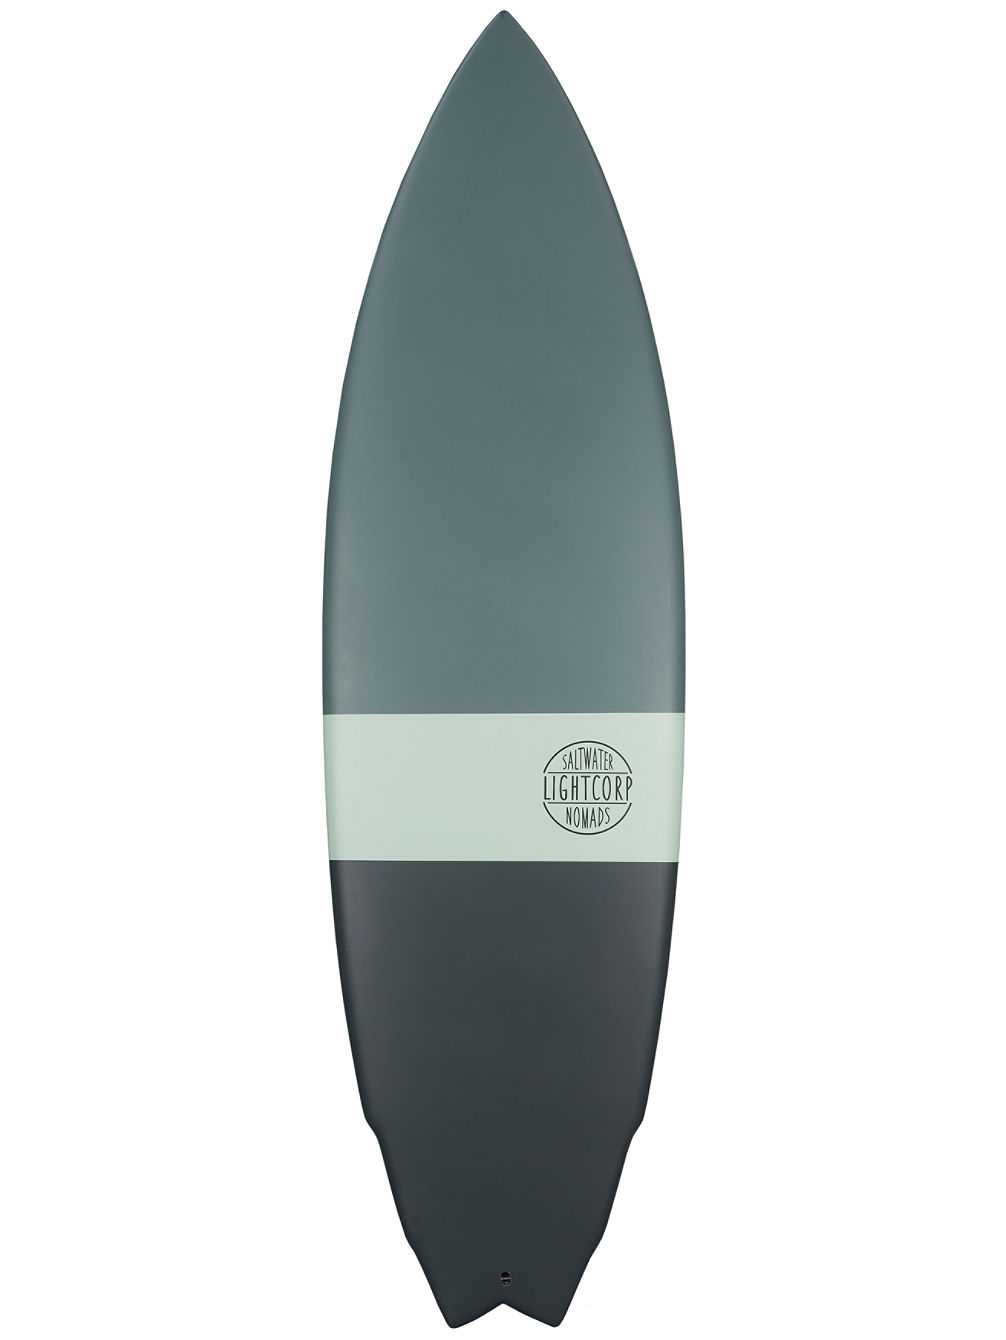 Truvalli Fish Epoxy Future 6.4 Surfboard